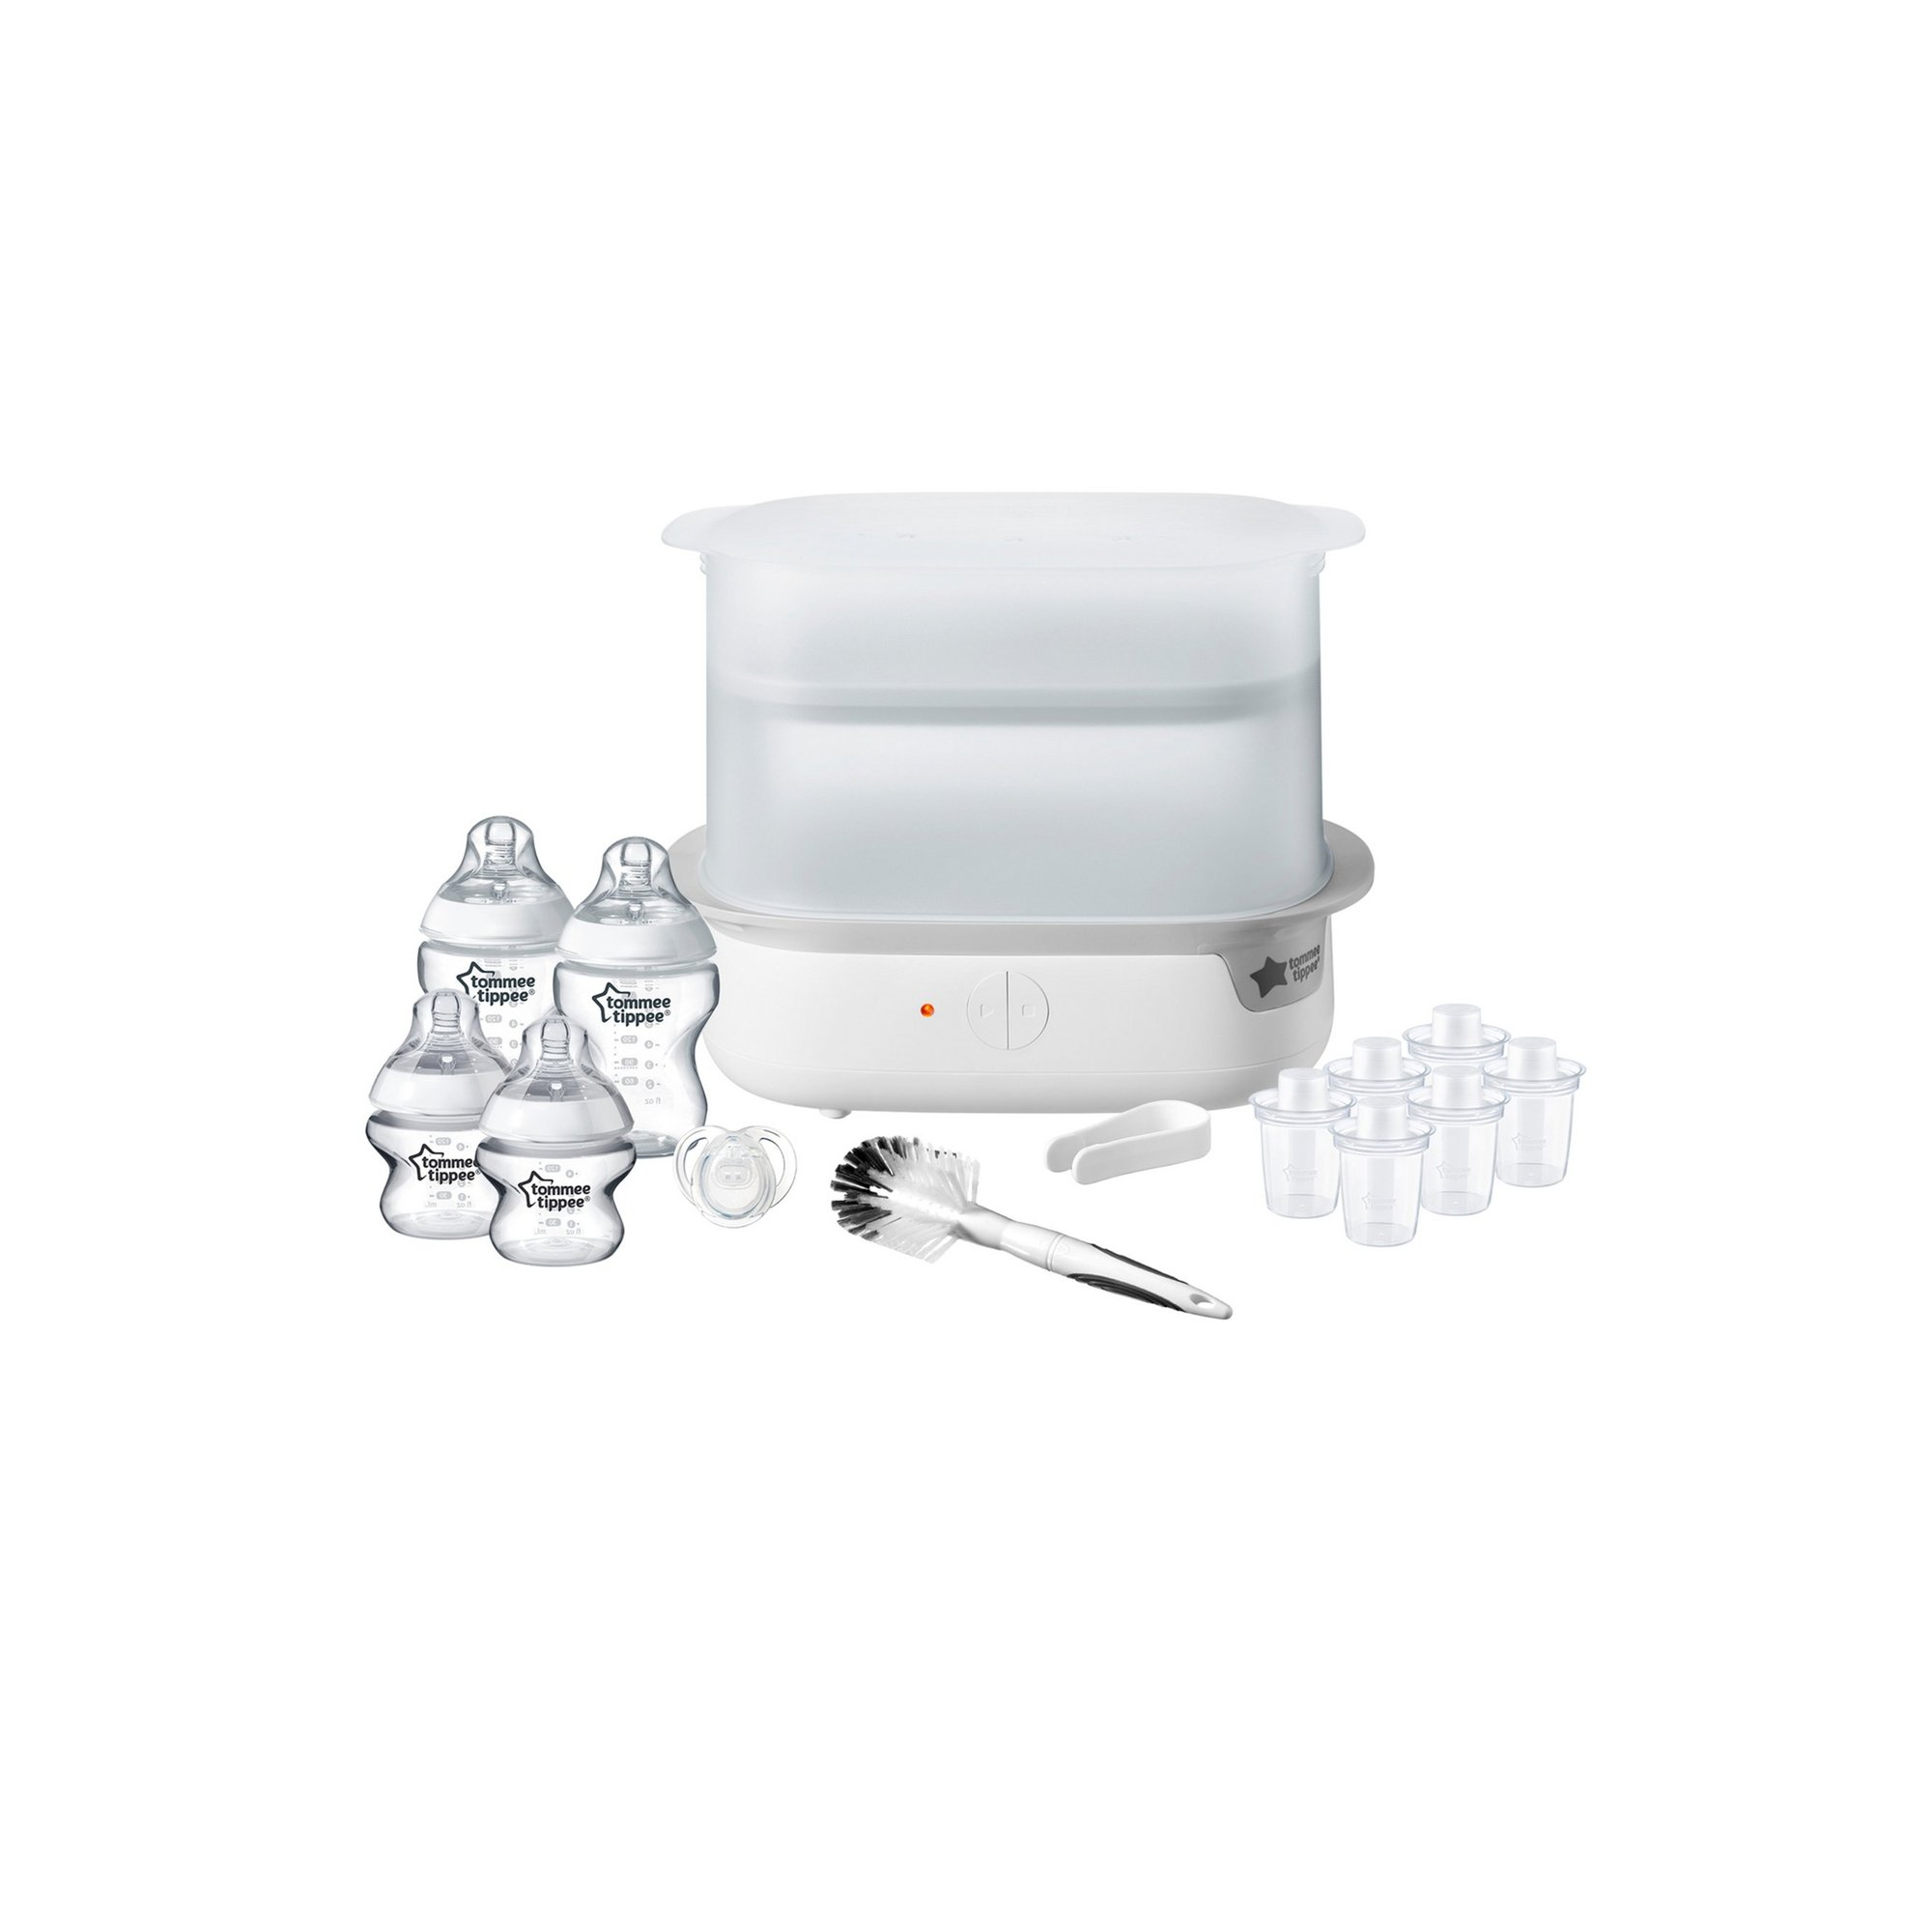 Image of Tommee Tippee Electric Steriliser Kit